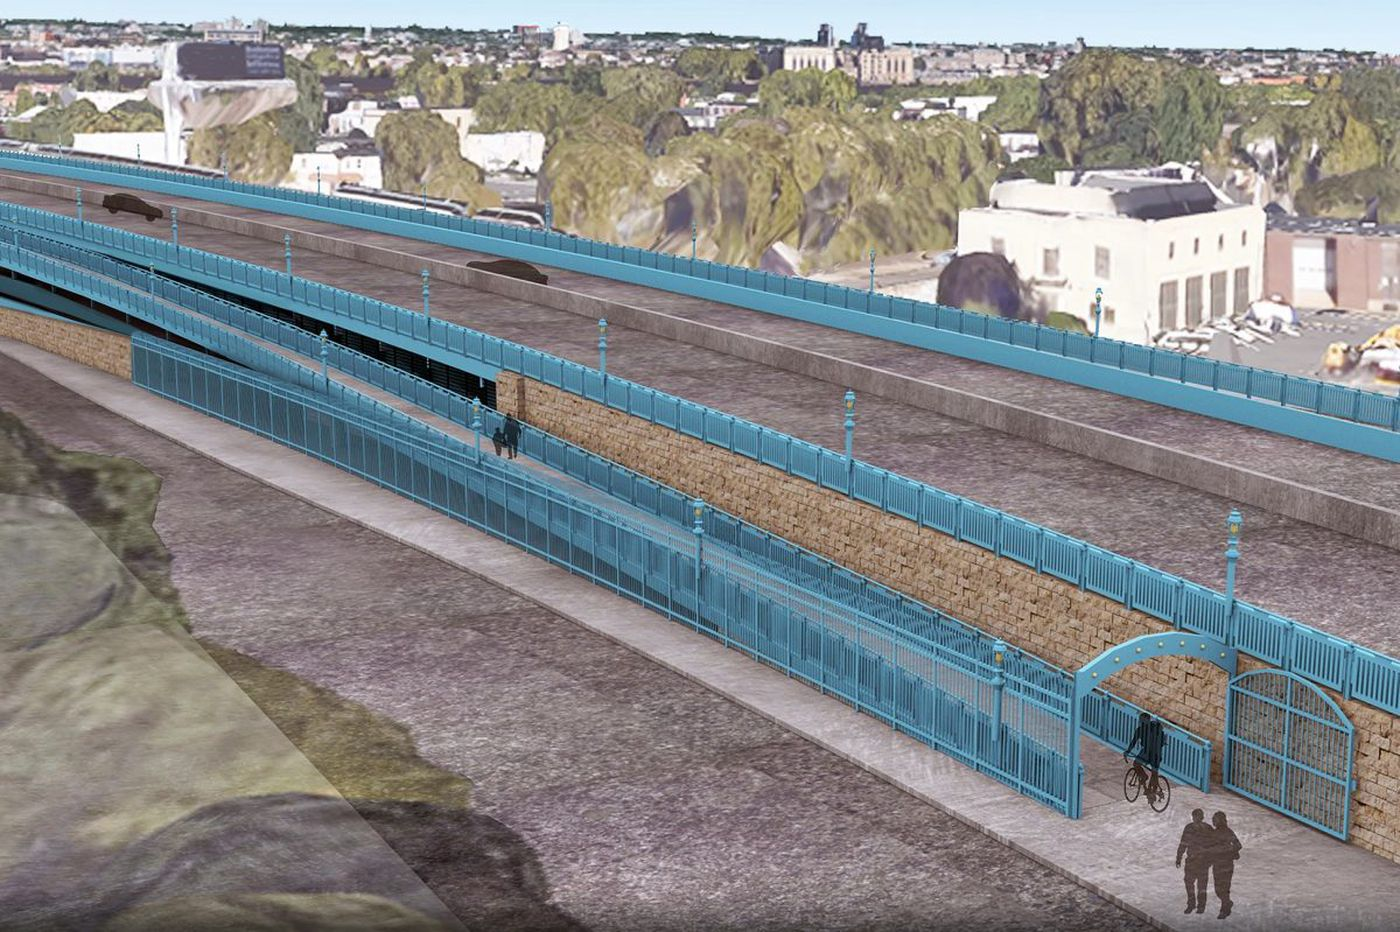 Bicycle ramp coming to Ben Franklin Bridge in 2019